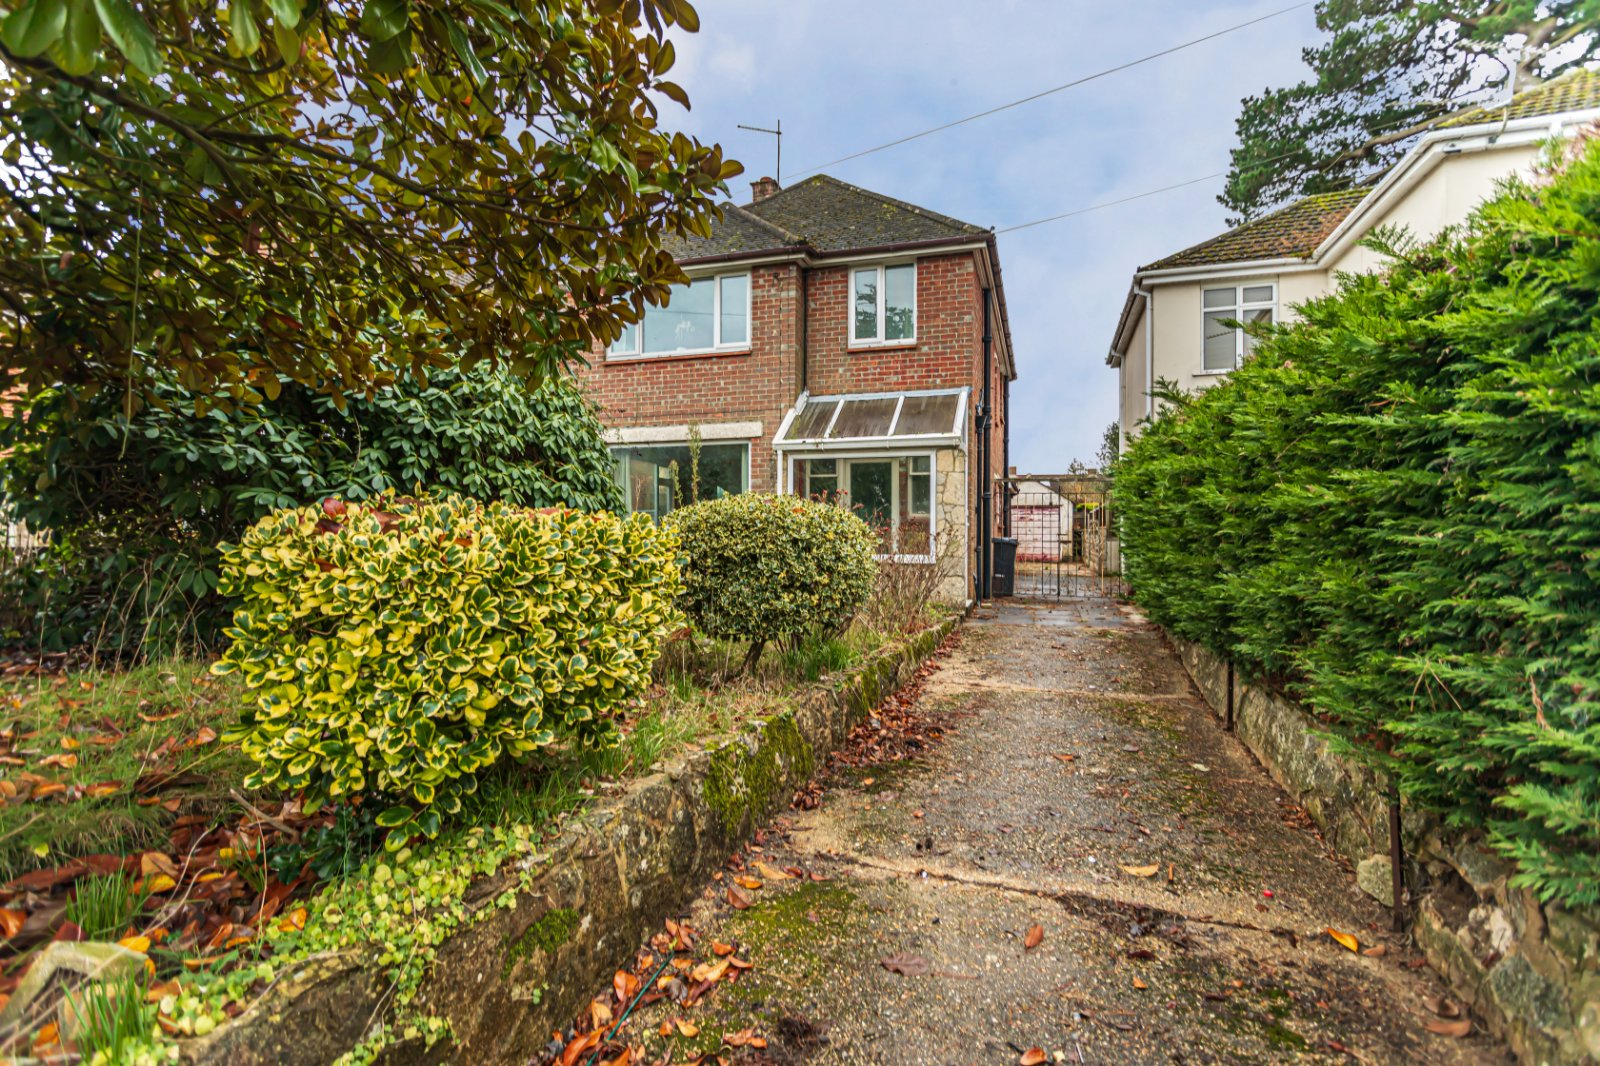 3 bed house for sale in Bournemouth 0